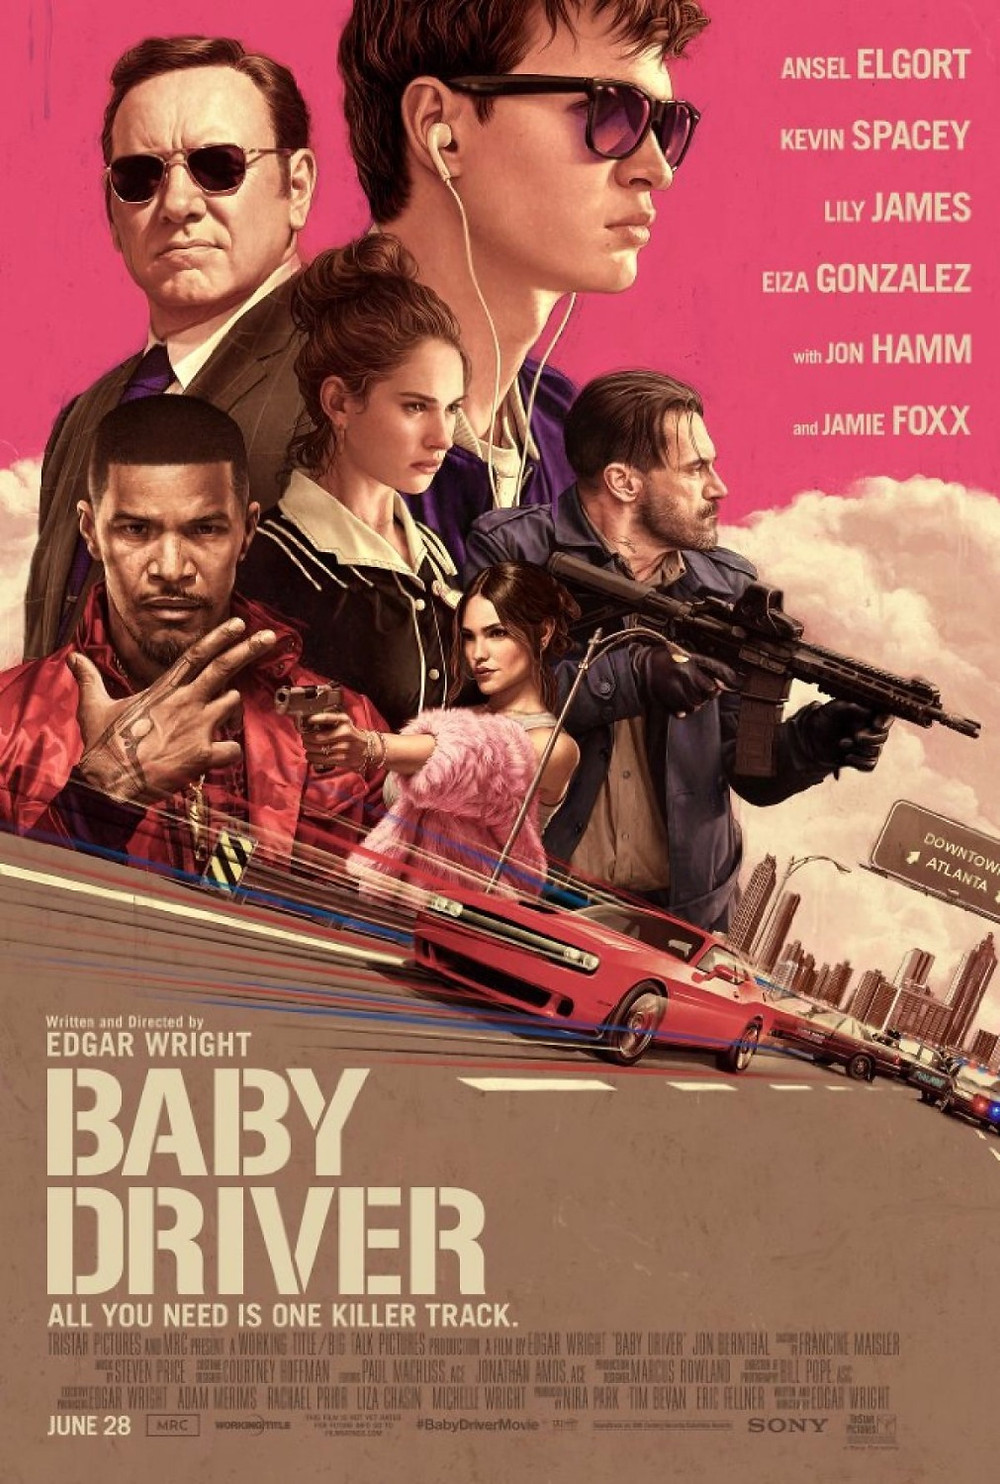 Edgar Wright's BABY DRIVER